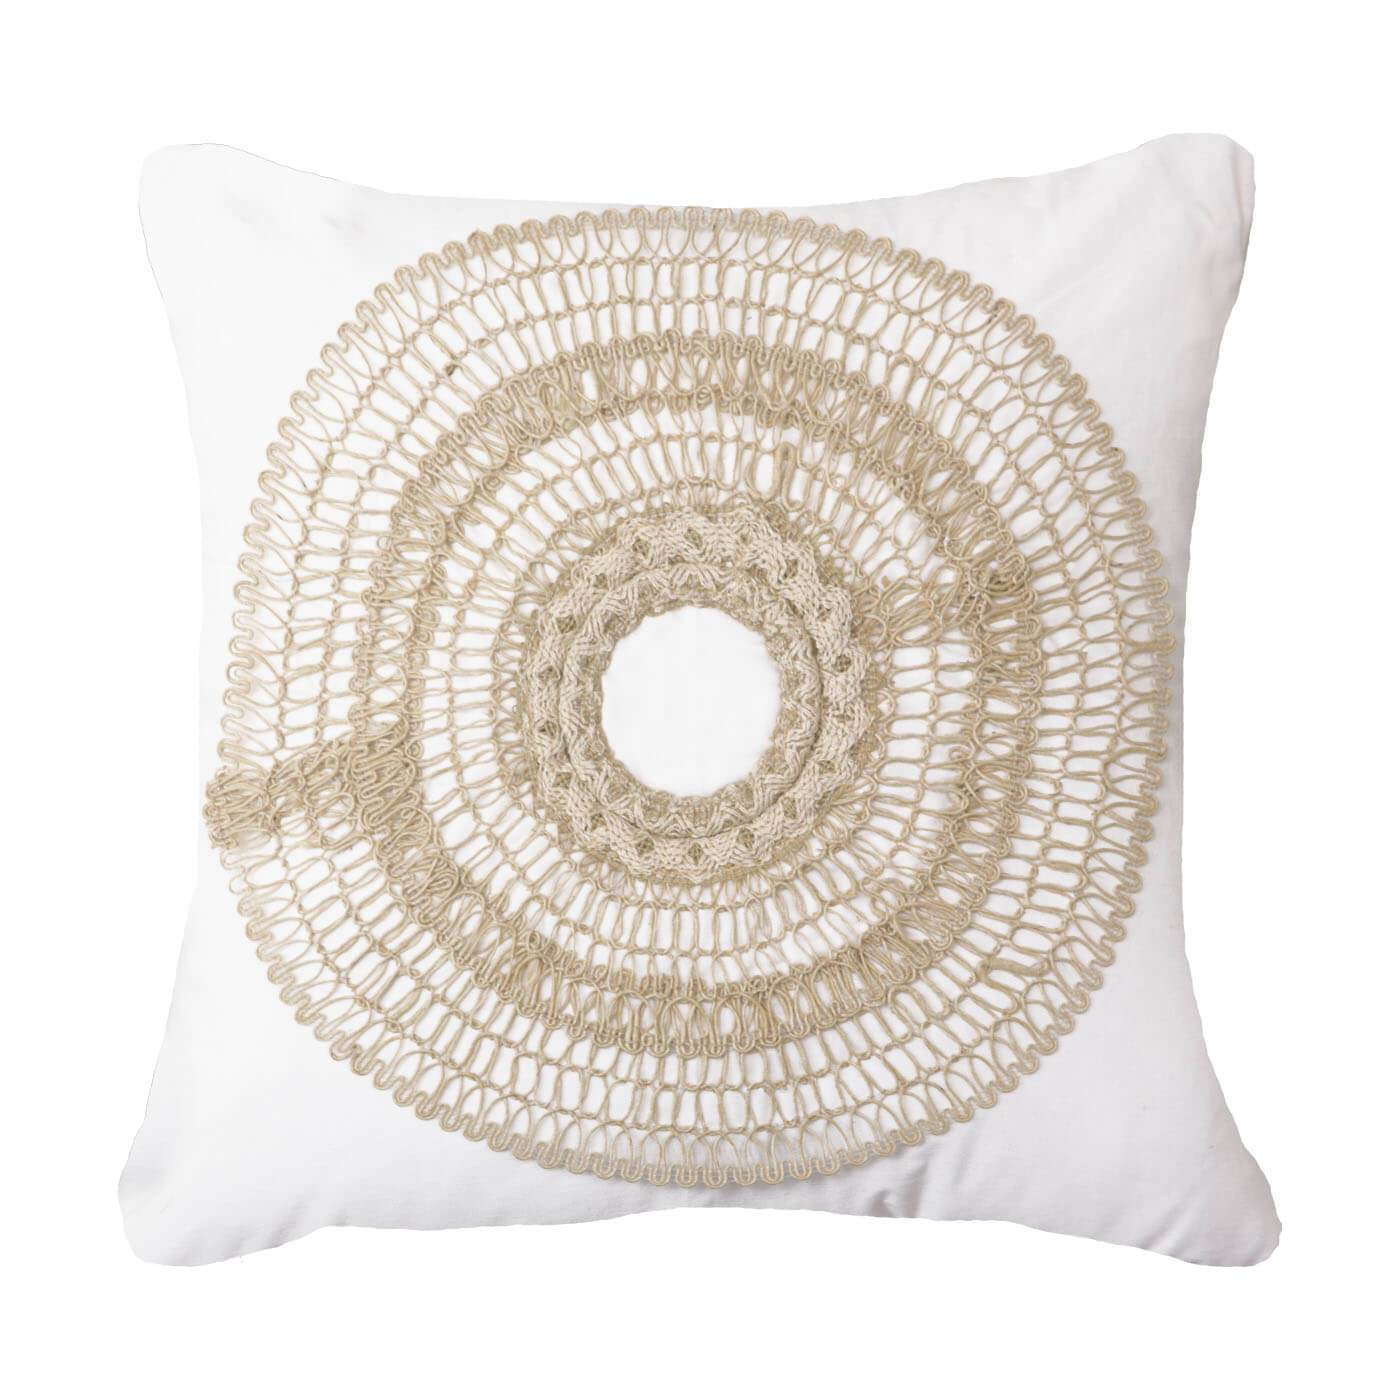 Bandhini Homewear Design Medium Cushion White / Surf / 20 x 20 African Armour White Medium Cushion 50x50cm